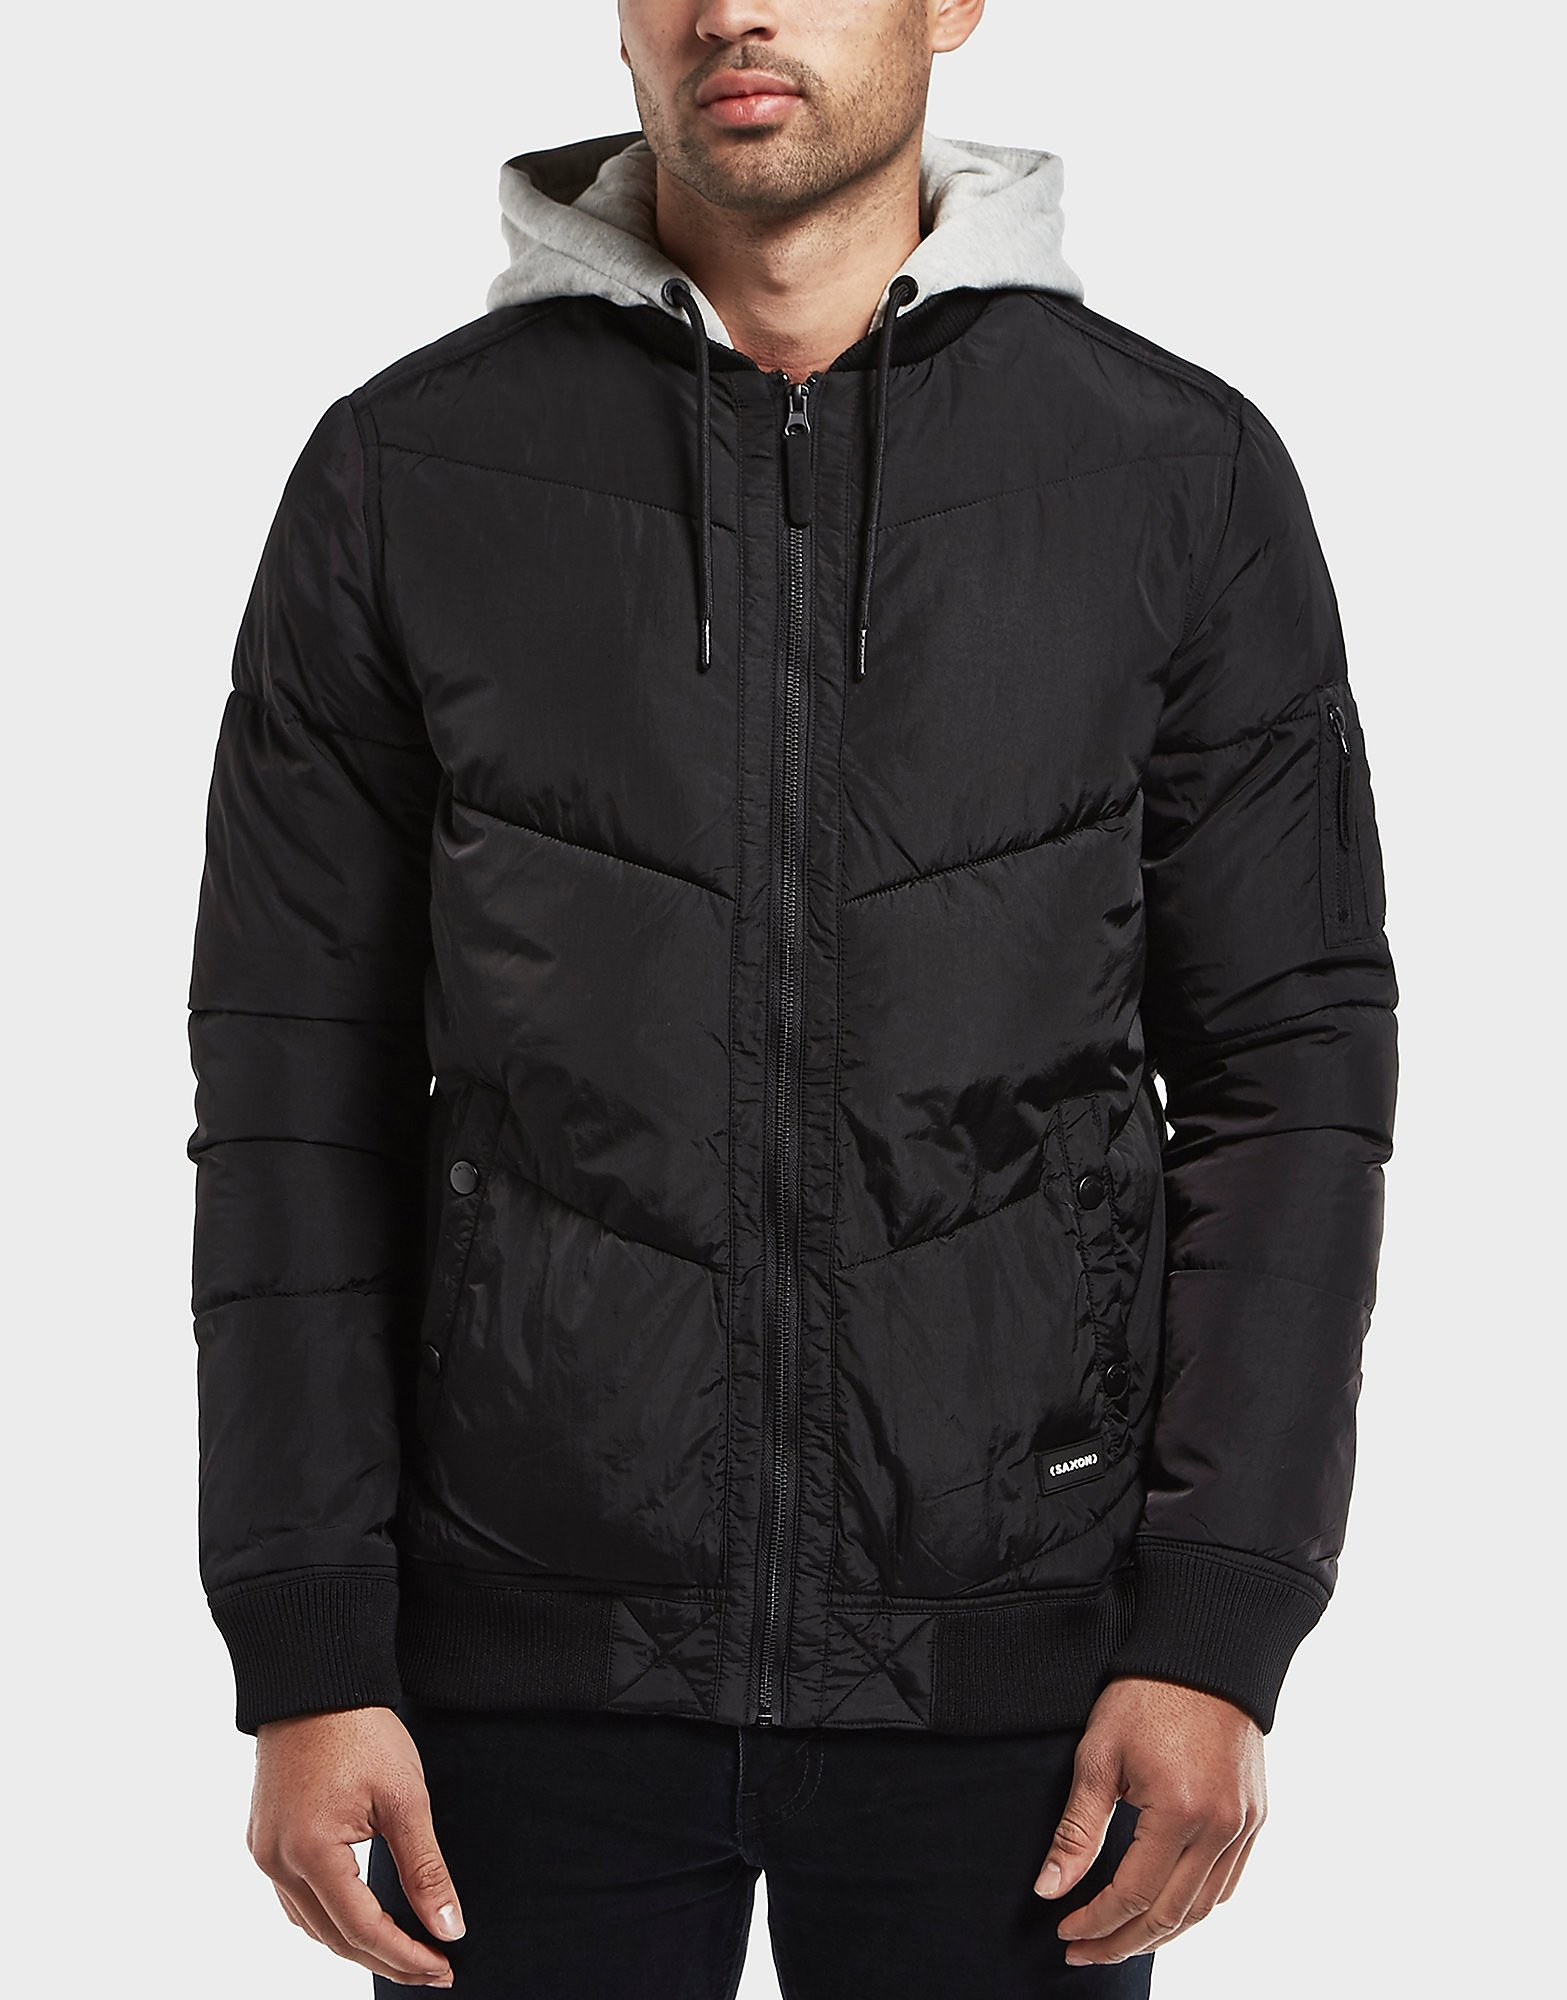 One True Saxon Credit Padded Jacket